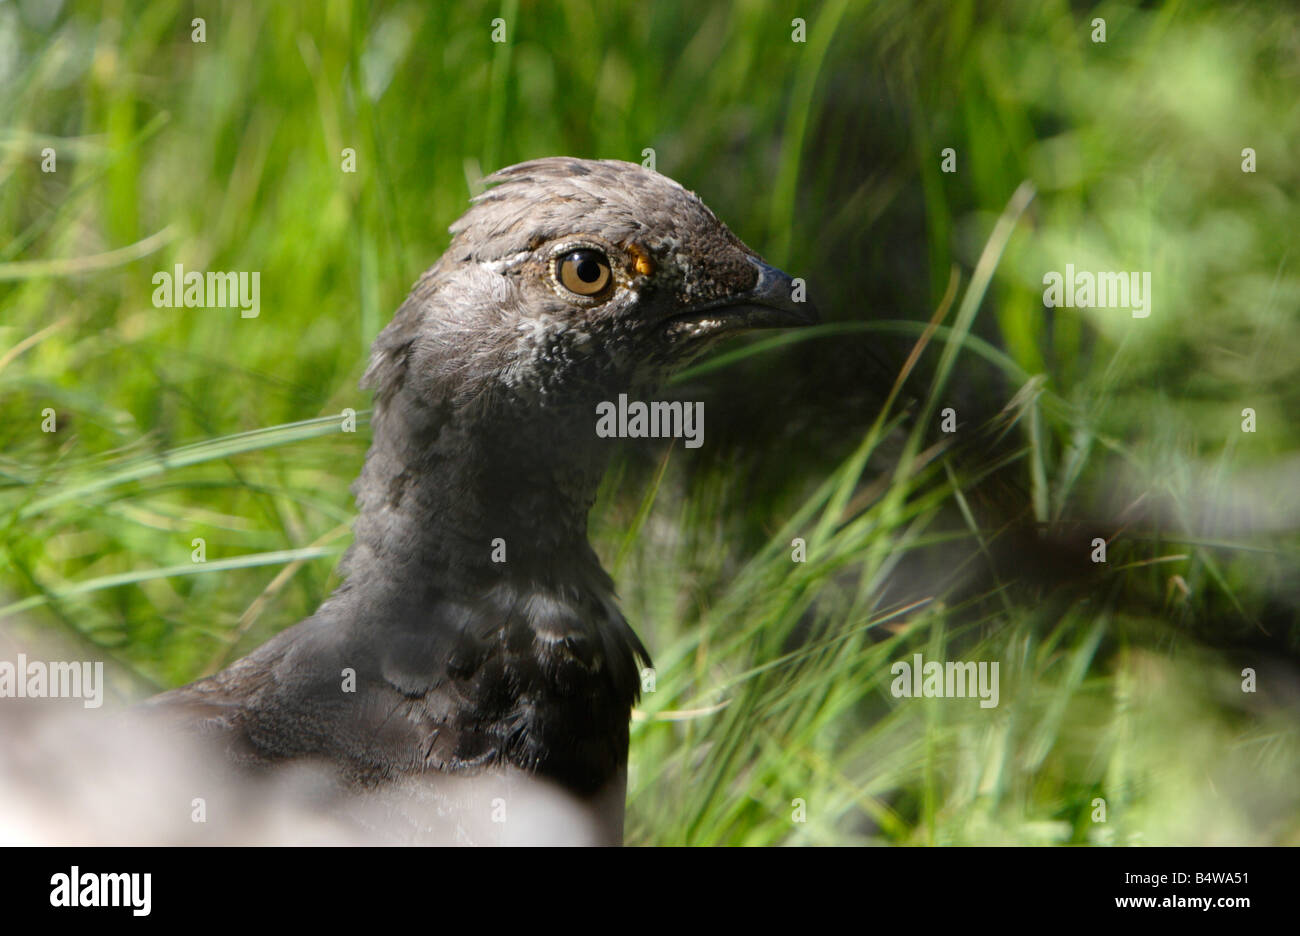 Dusky Grouse Dendragapus obscurus (head & neck image) in tall grasses in hills near Gardiner Montana in July - Stock Image